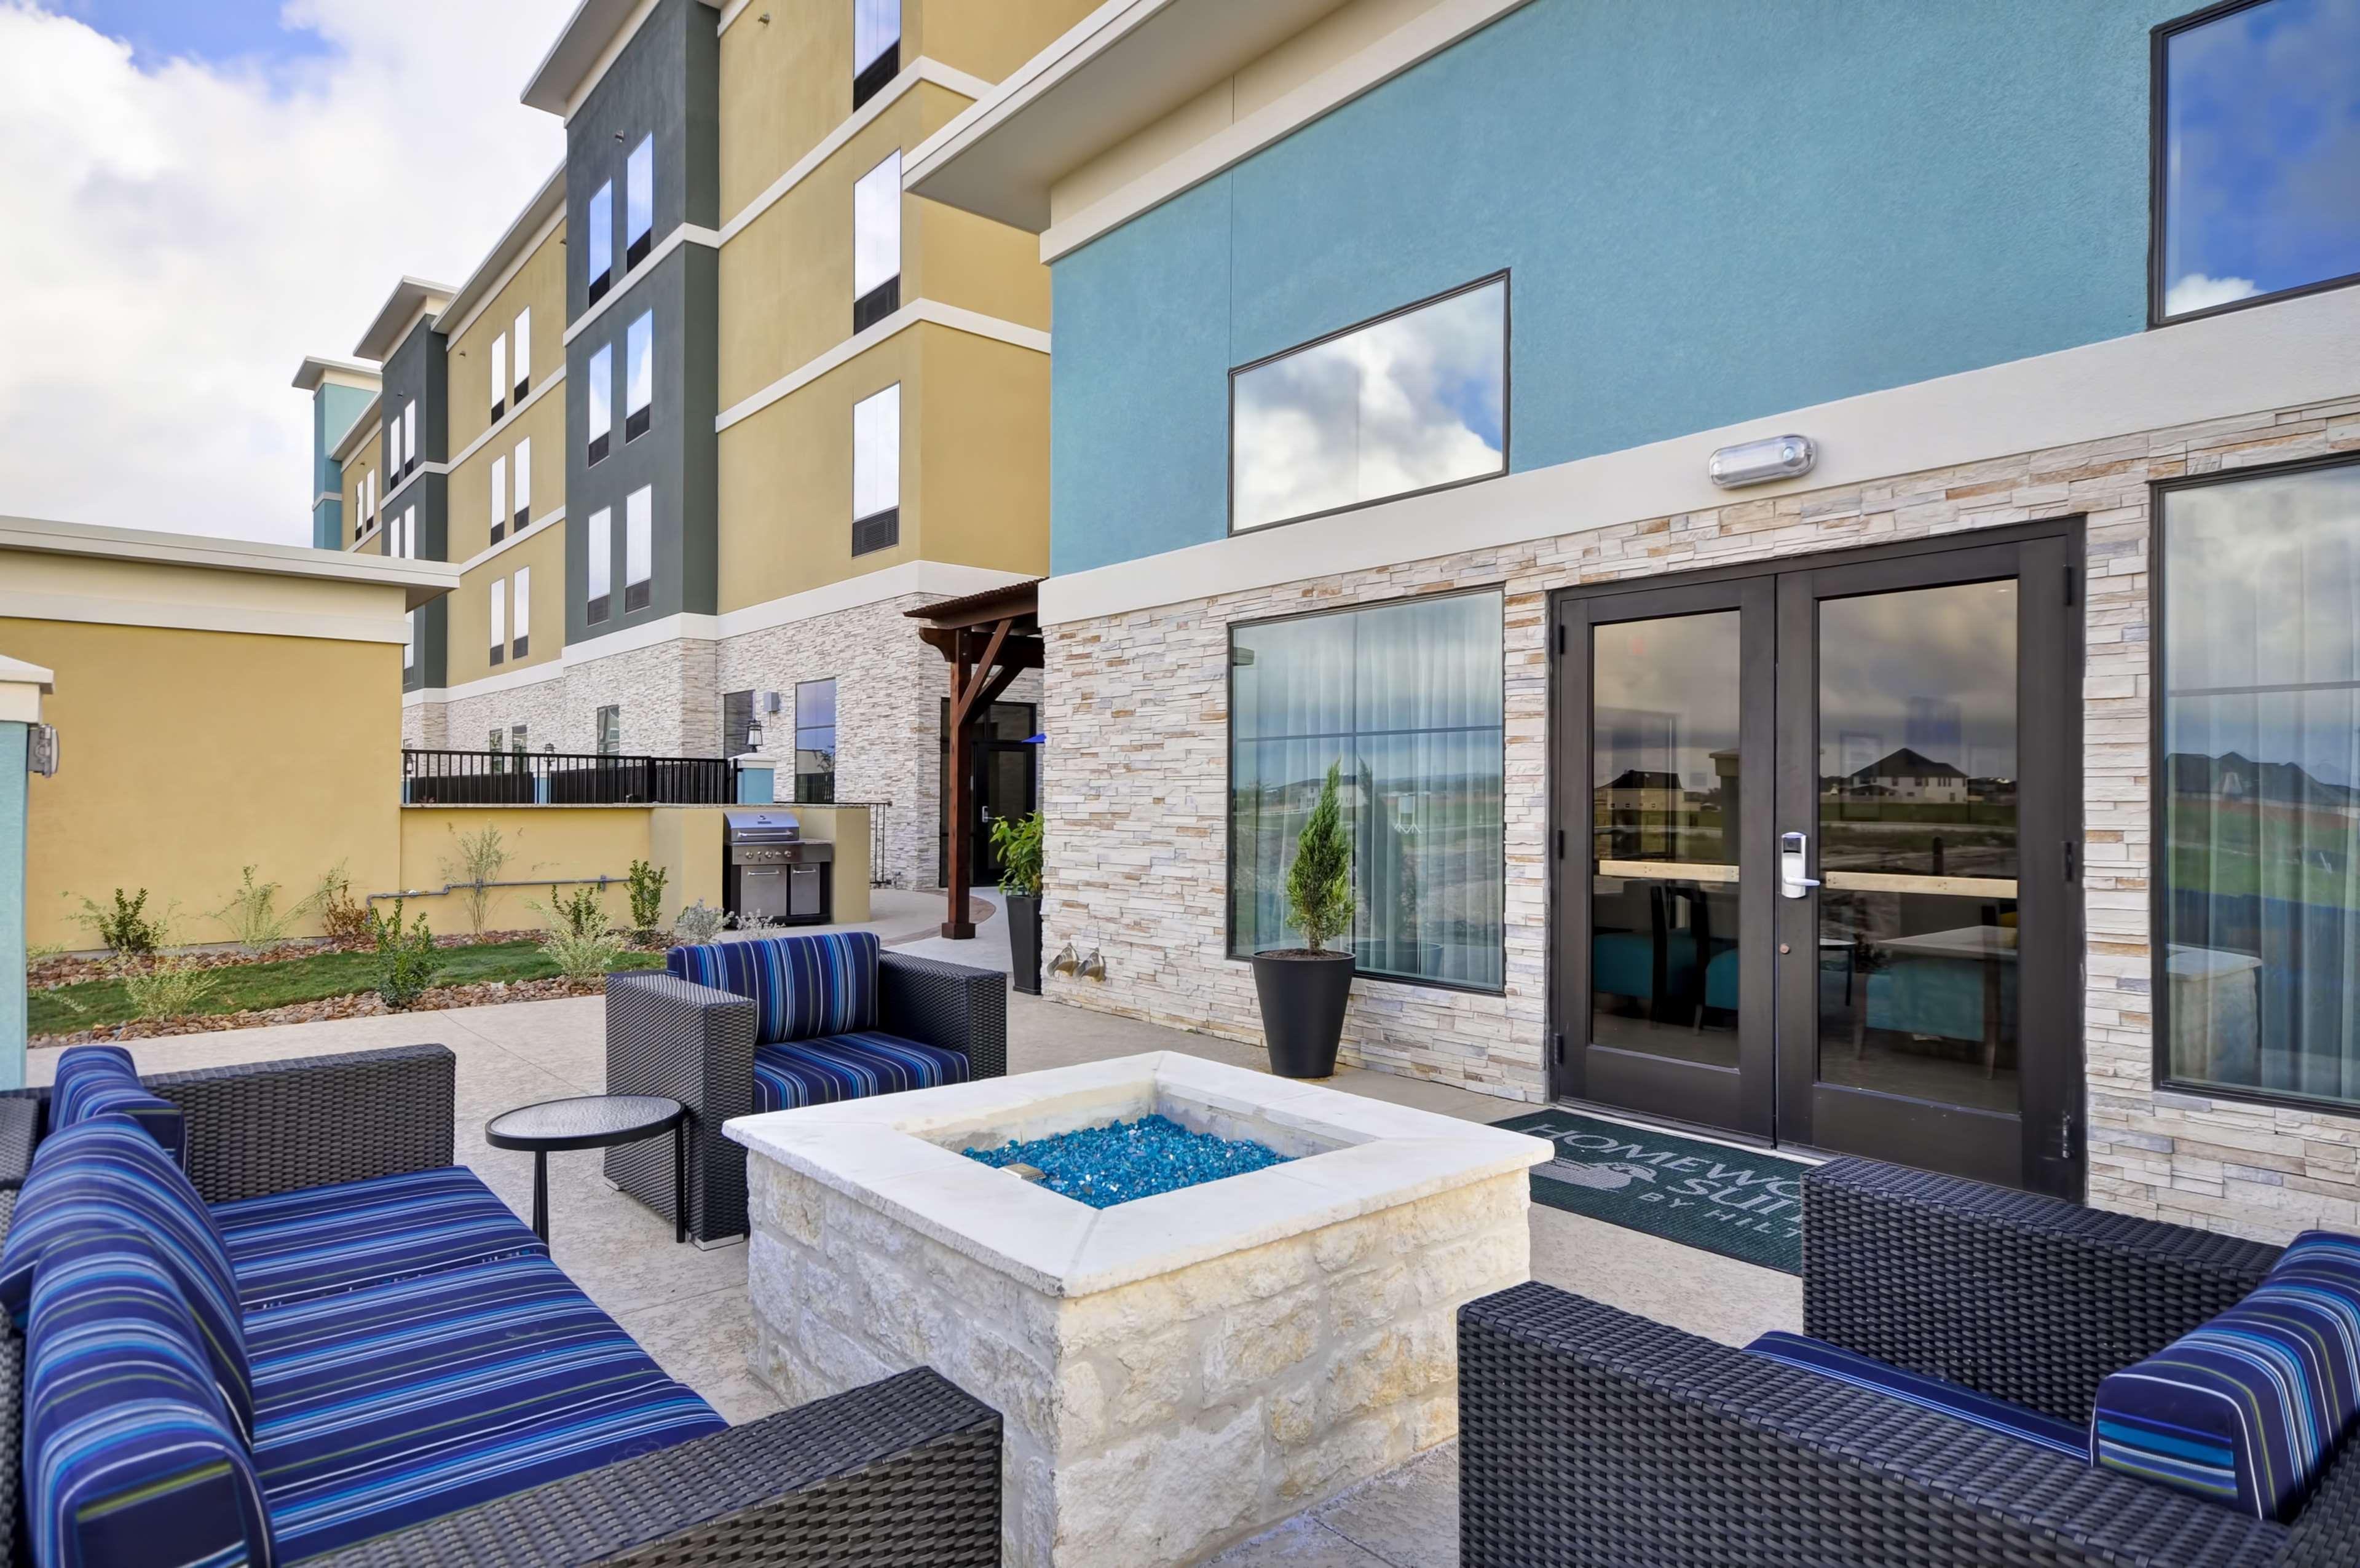 Homewood Suites by Hilton New Braunfels image 8